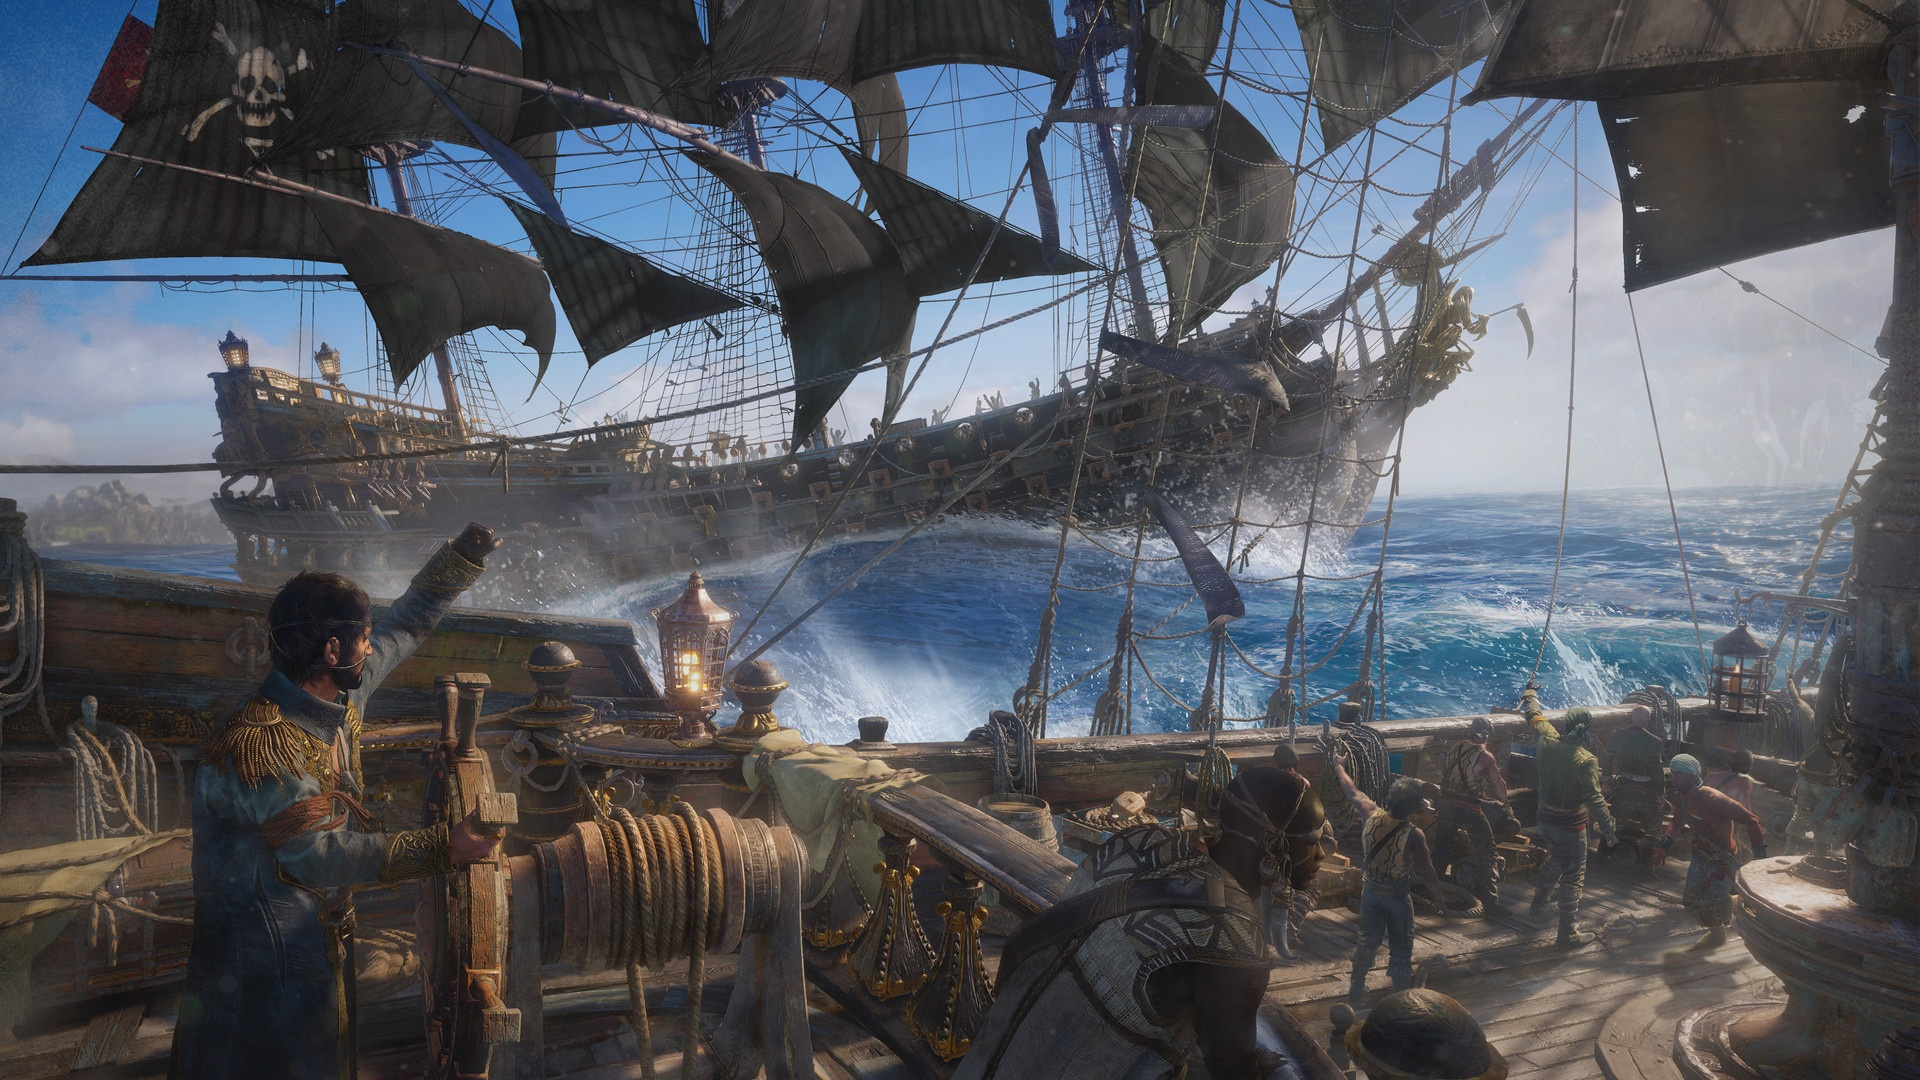 Ubisoft's Skull and Bones won't be at E3